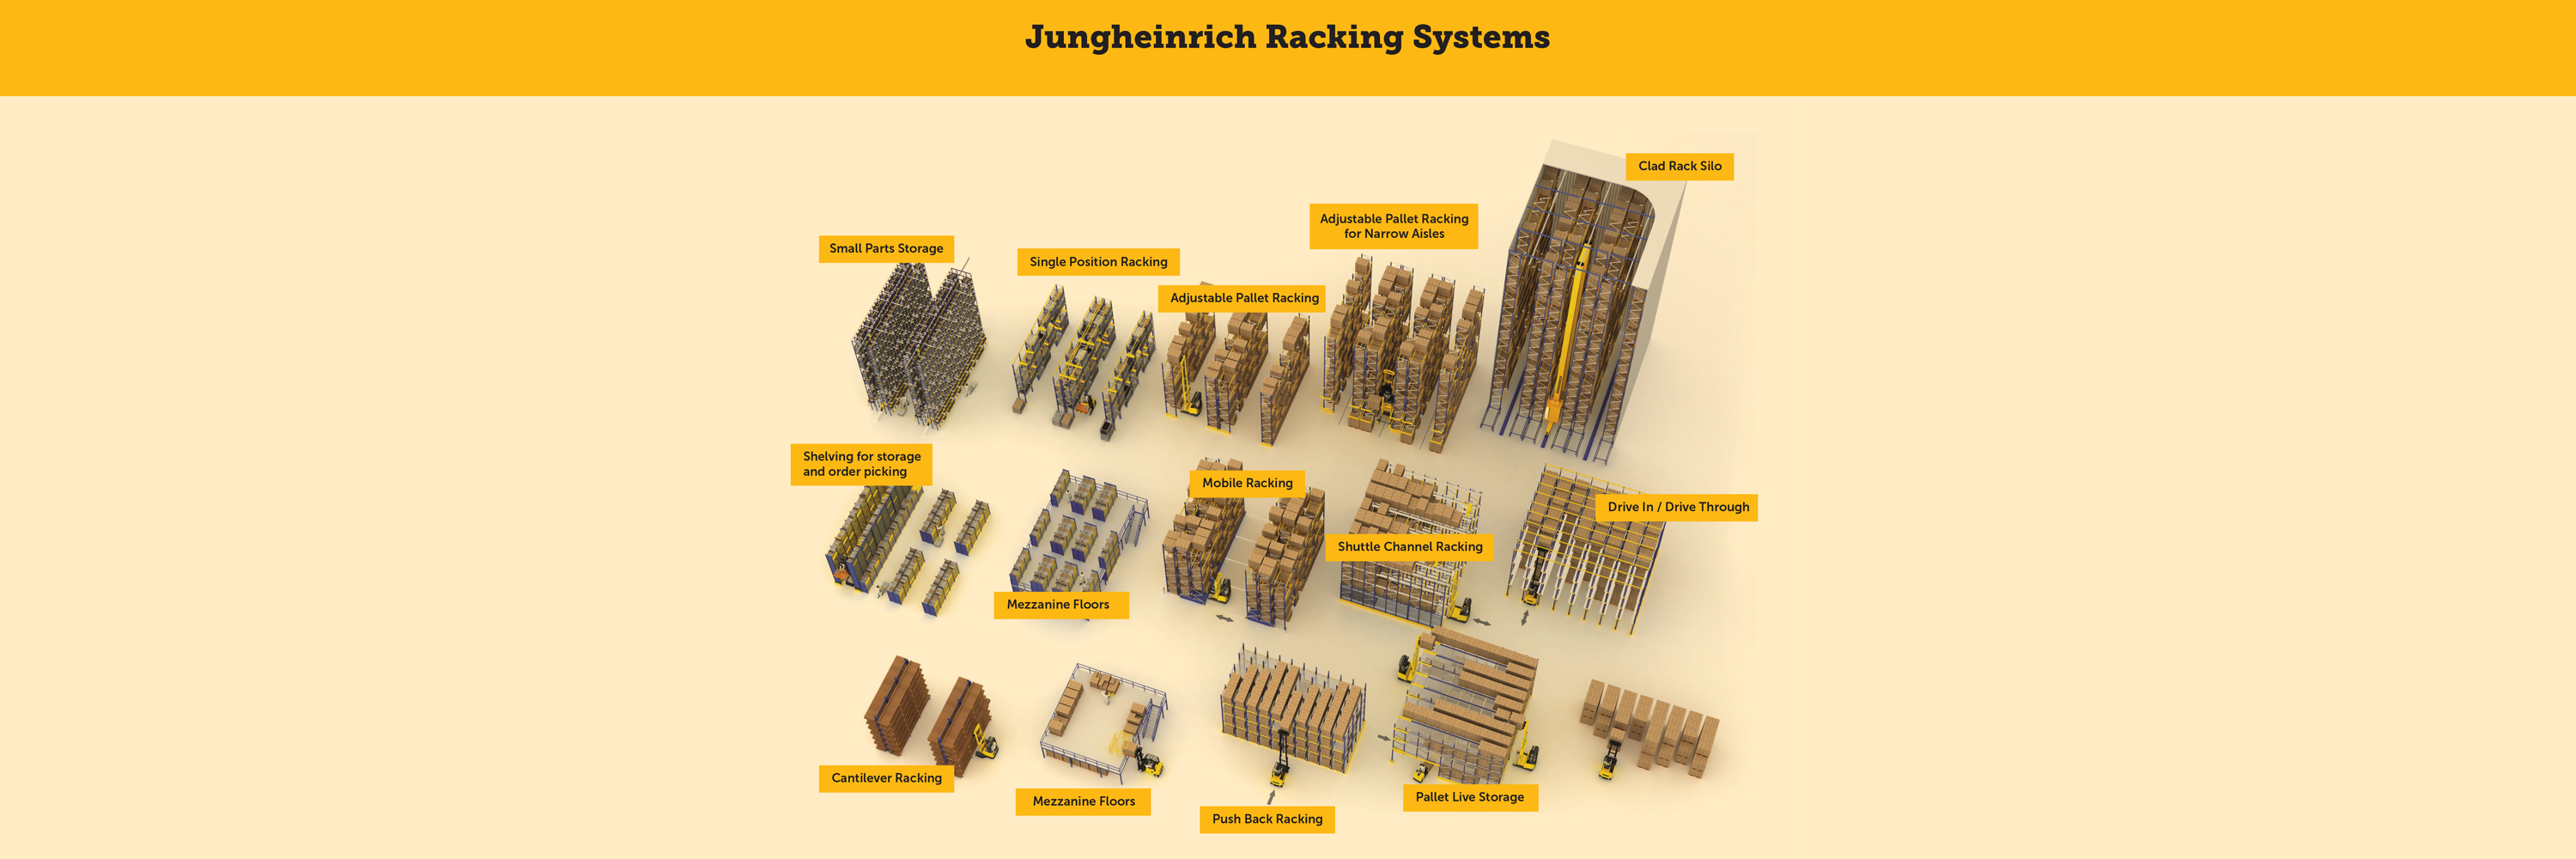 Jungheinrich-Racking-systems